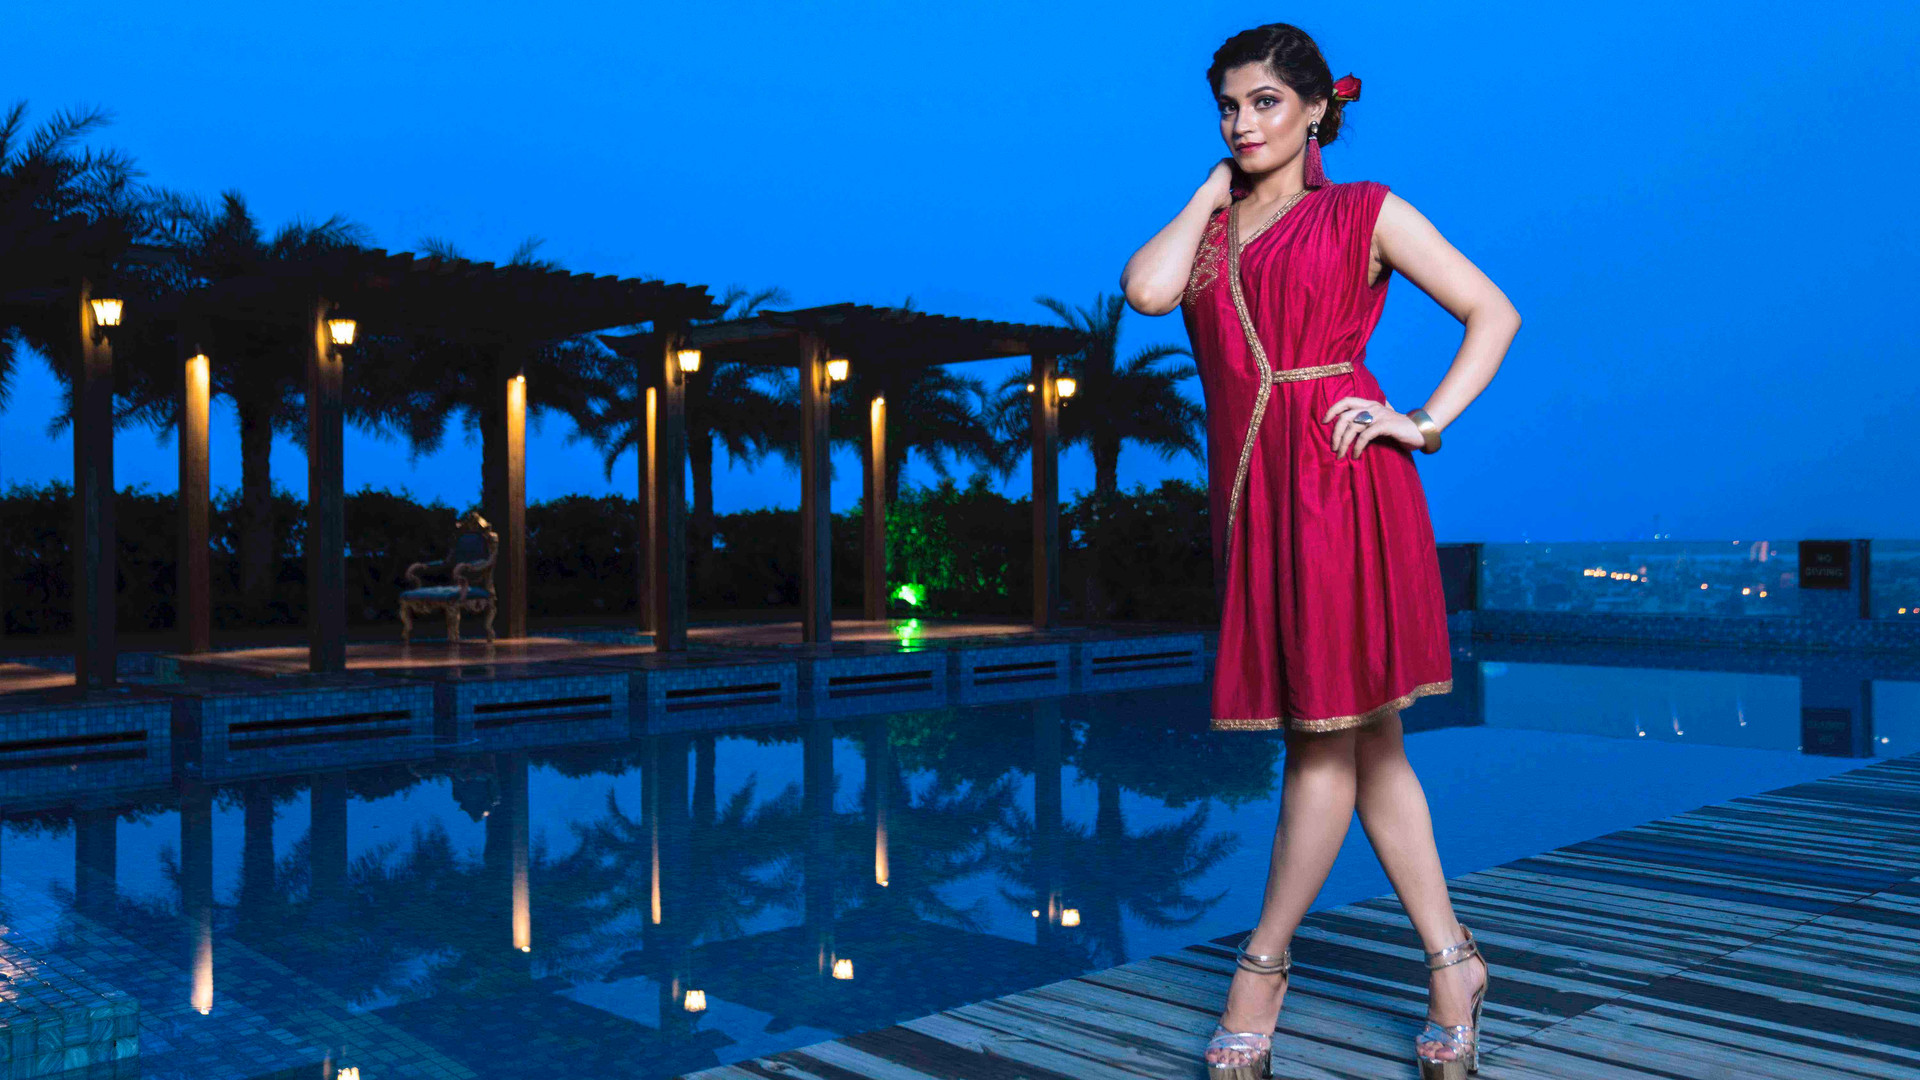 Dineet Kohli Red Dress 2.jpg